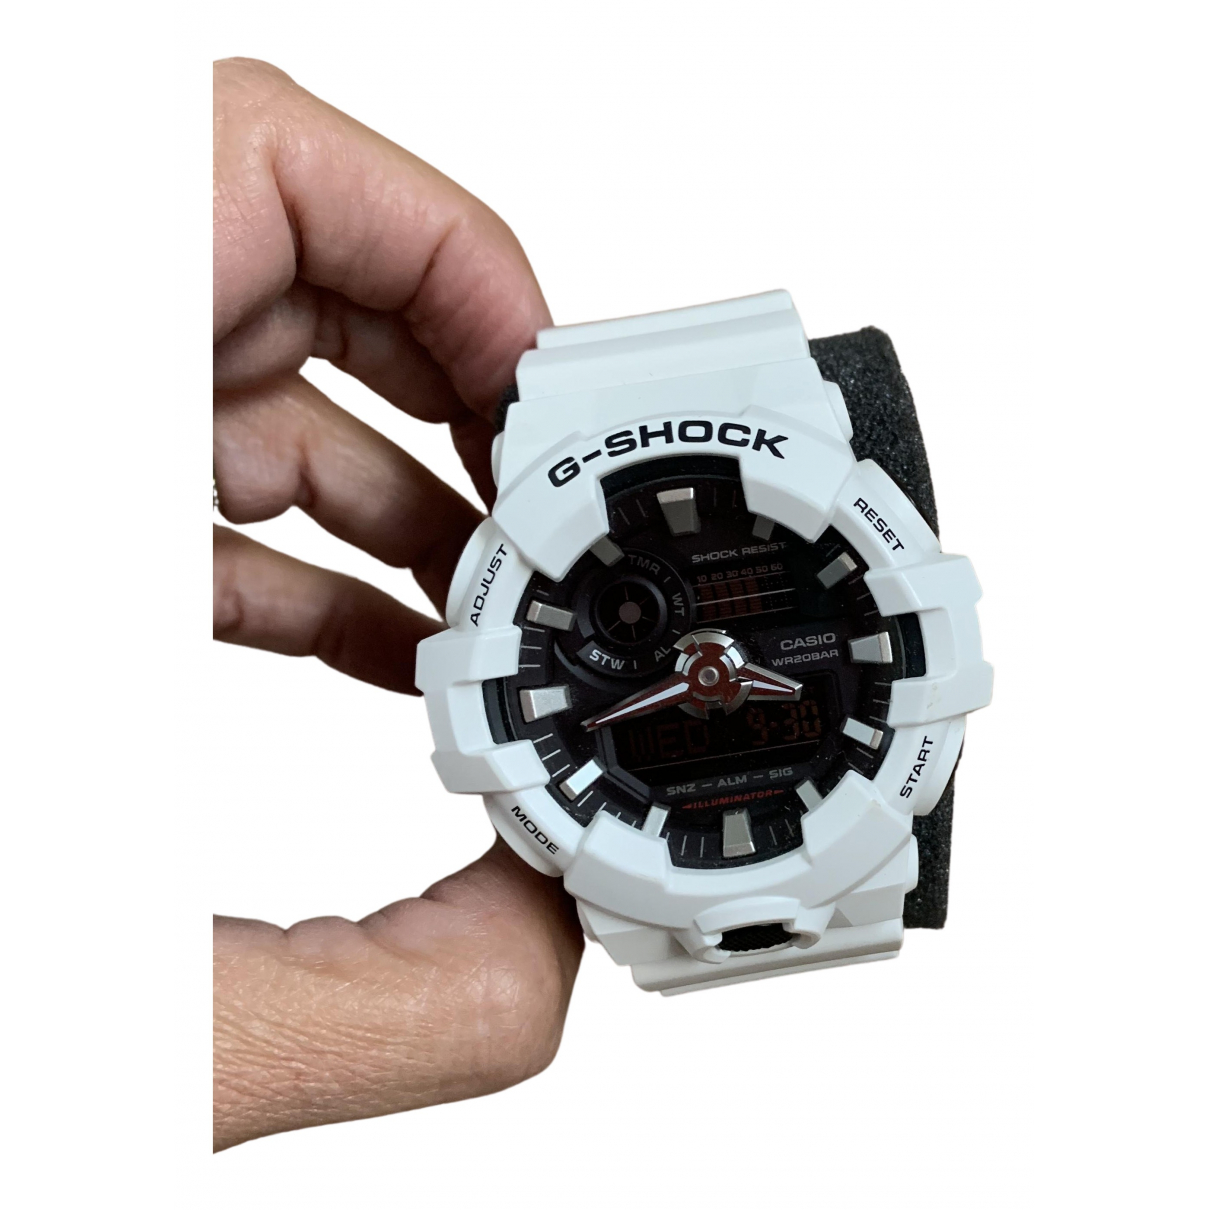 G-shock N White Rubber watch for Men N